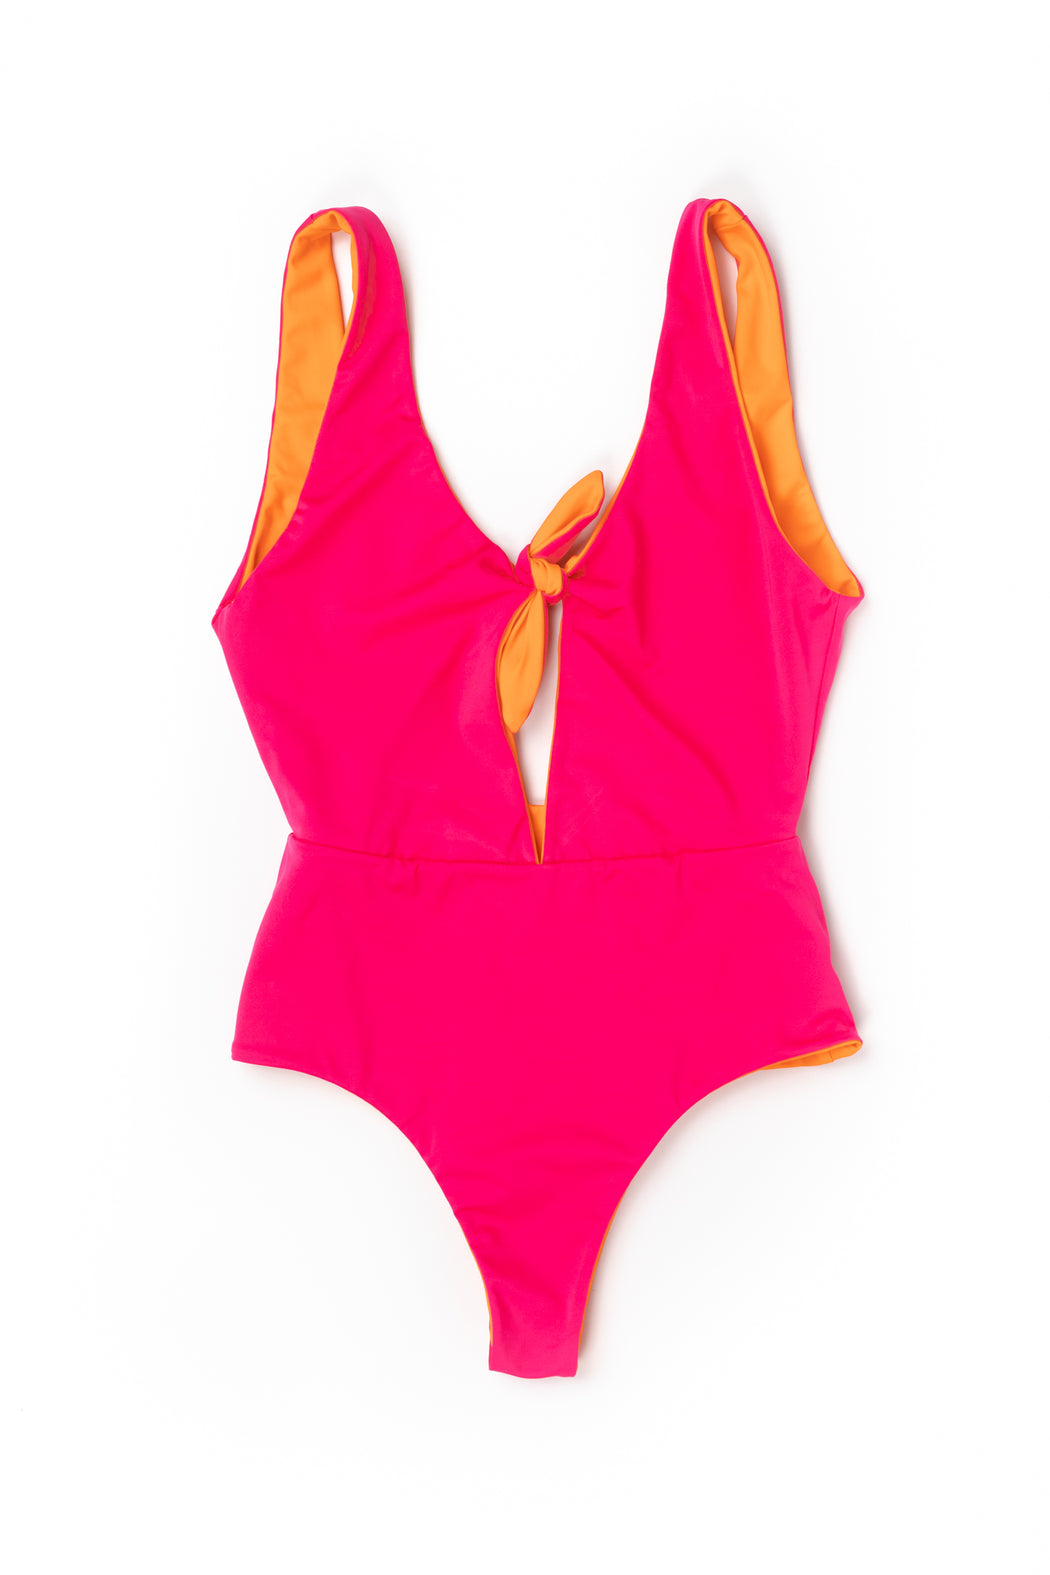 The Reversible Paradise Swimsuit